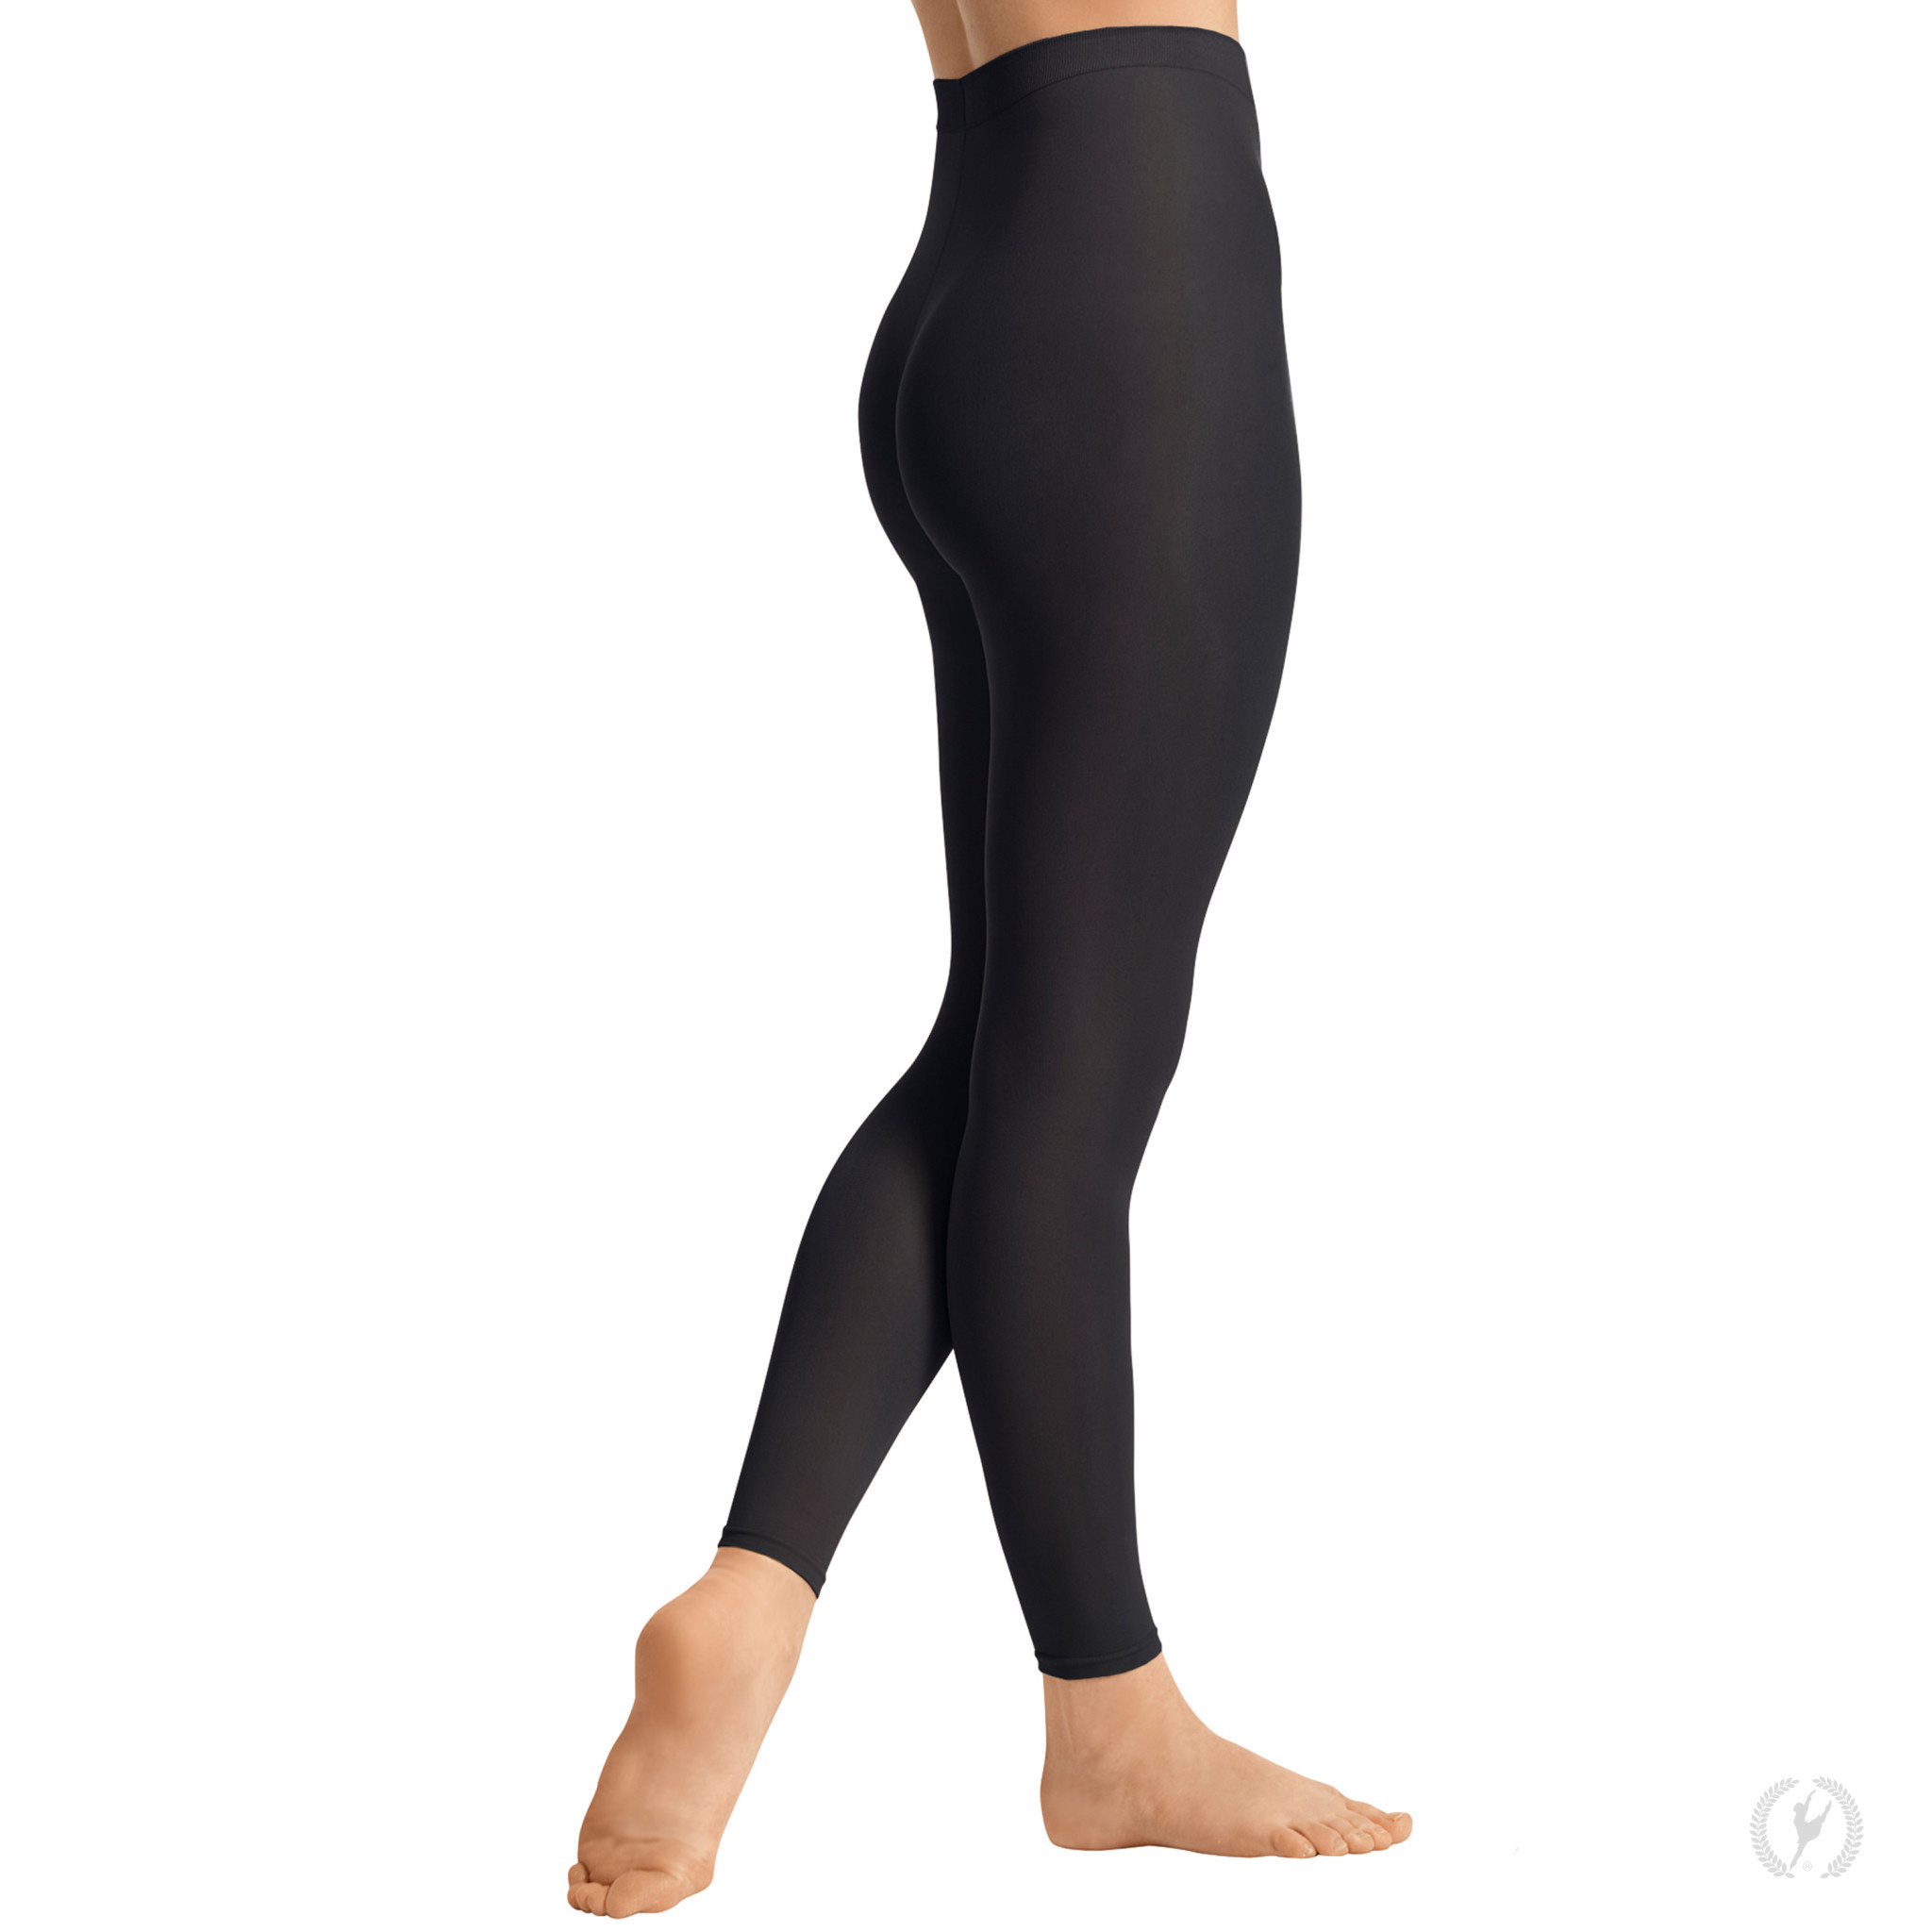 Eurotard 212c - Child Non-Run Footless Tights with Soft Knit Waistband